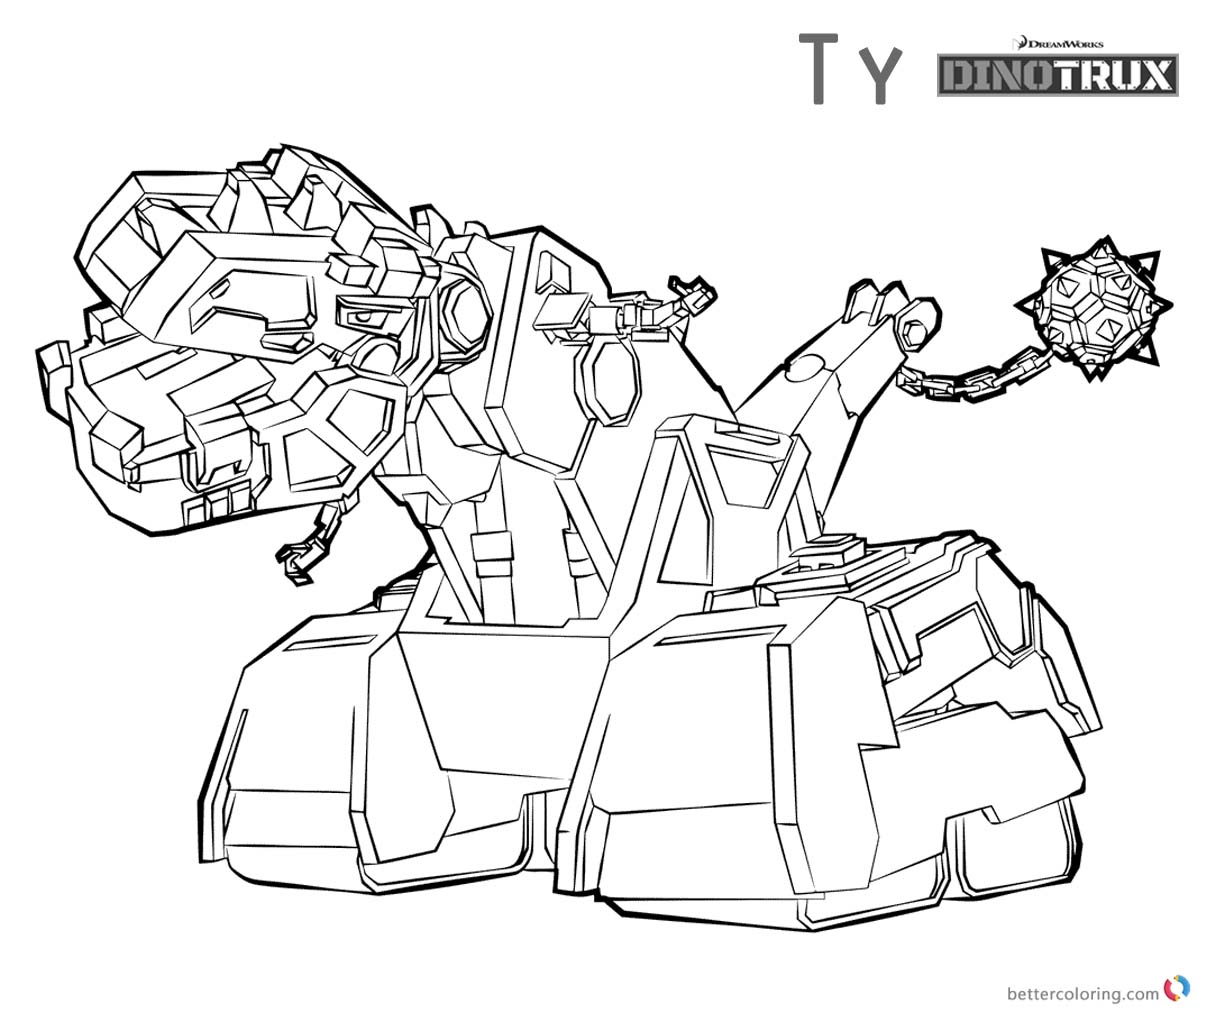 Kleurplaten Dino Trucks.Dinotrux Coloring Pages Ty Lineart Free Printable Coloring Pages